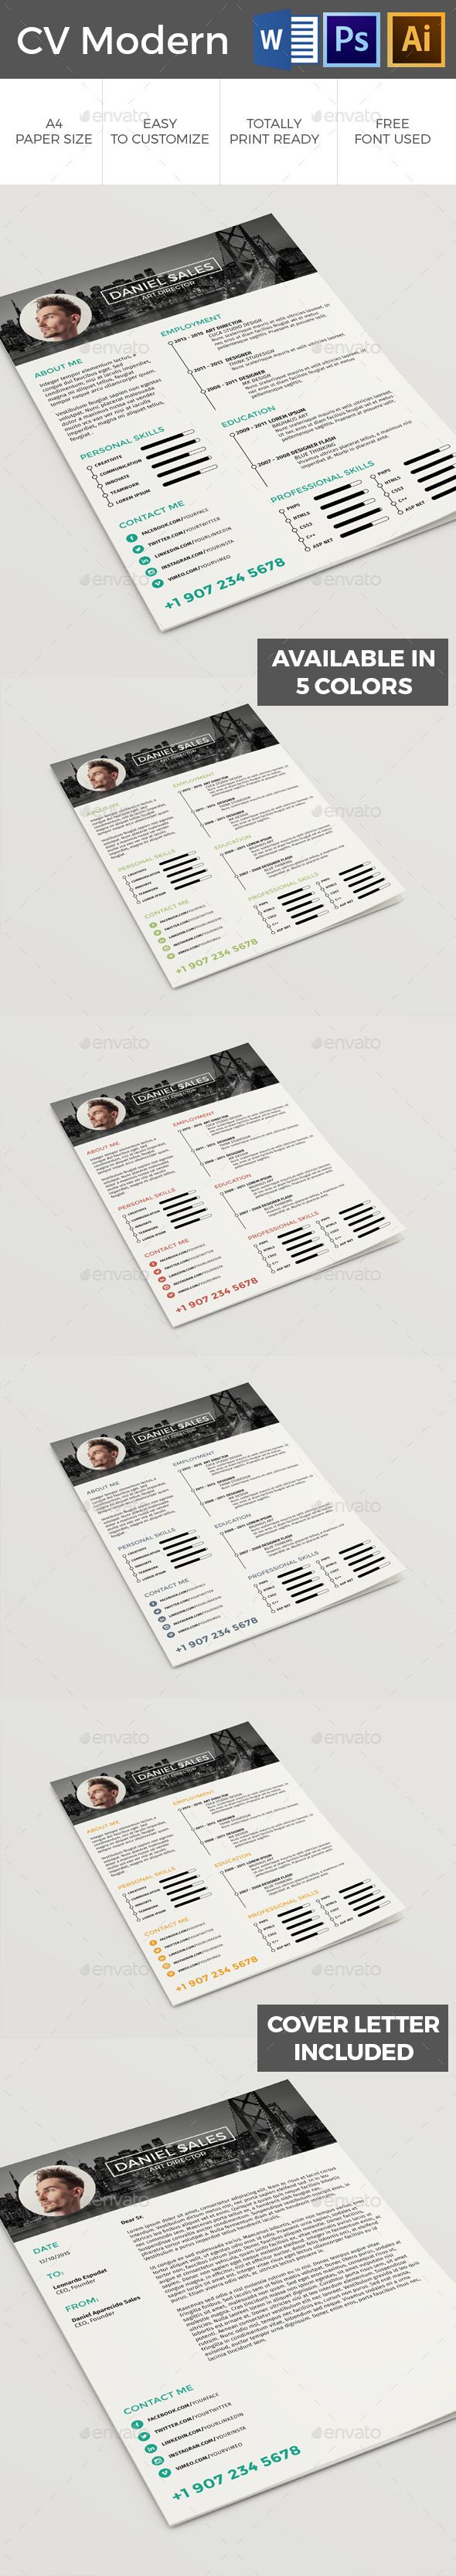 best images about logo typography logo design cv clean resume template psd ai design graphicriver